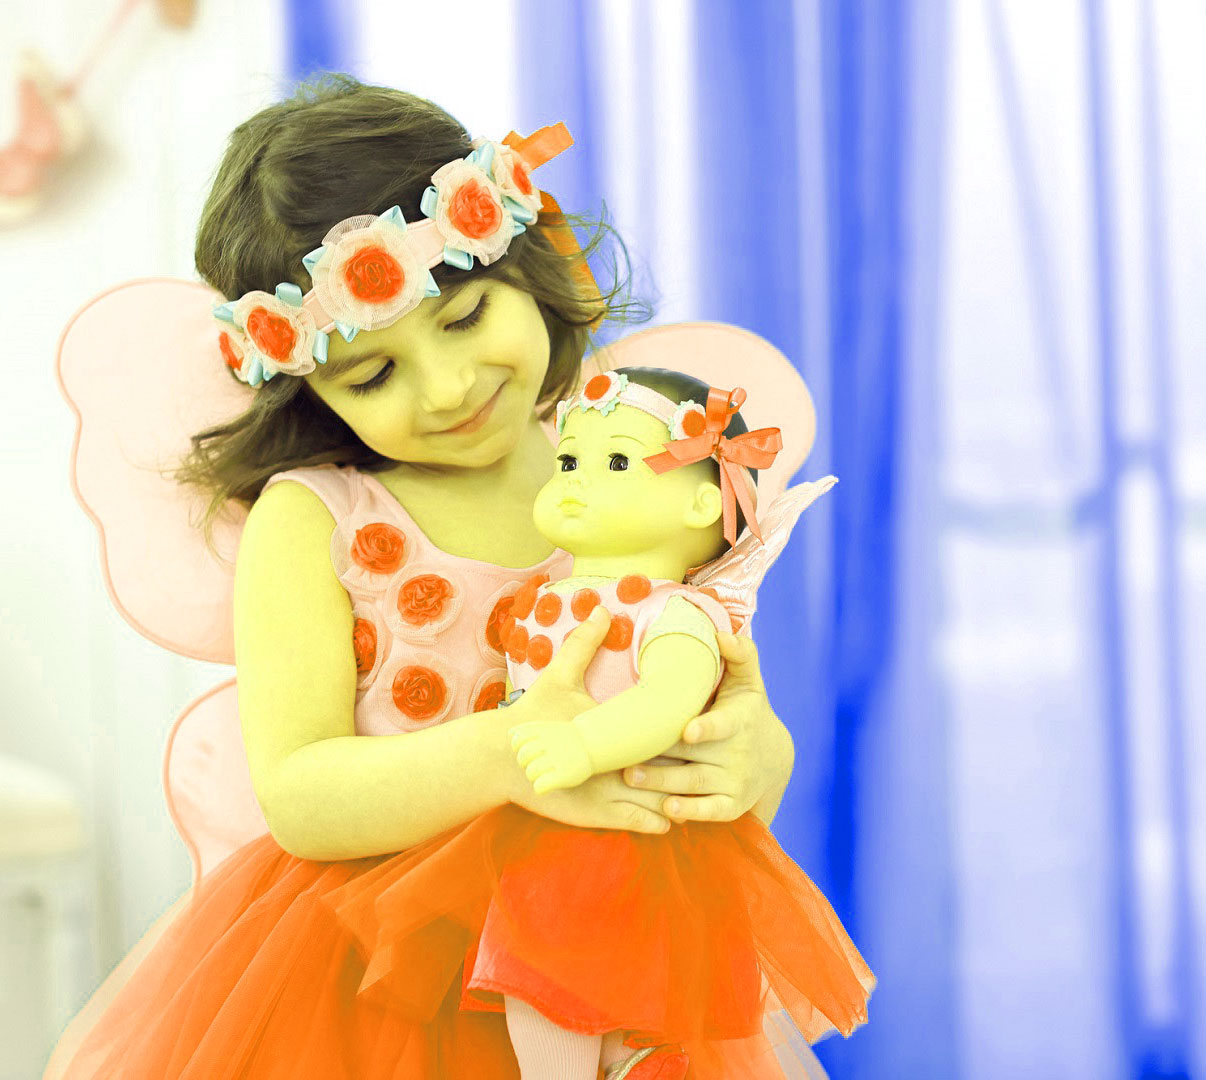 sweet whatapp dp Pictures With Cute Baby